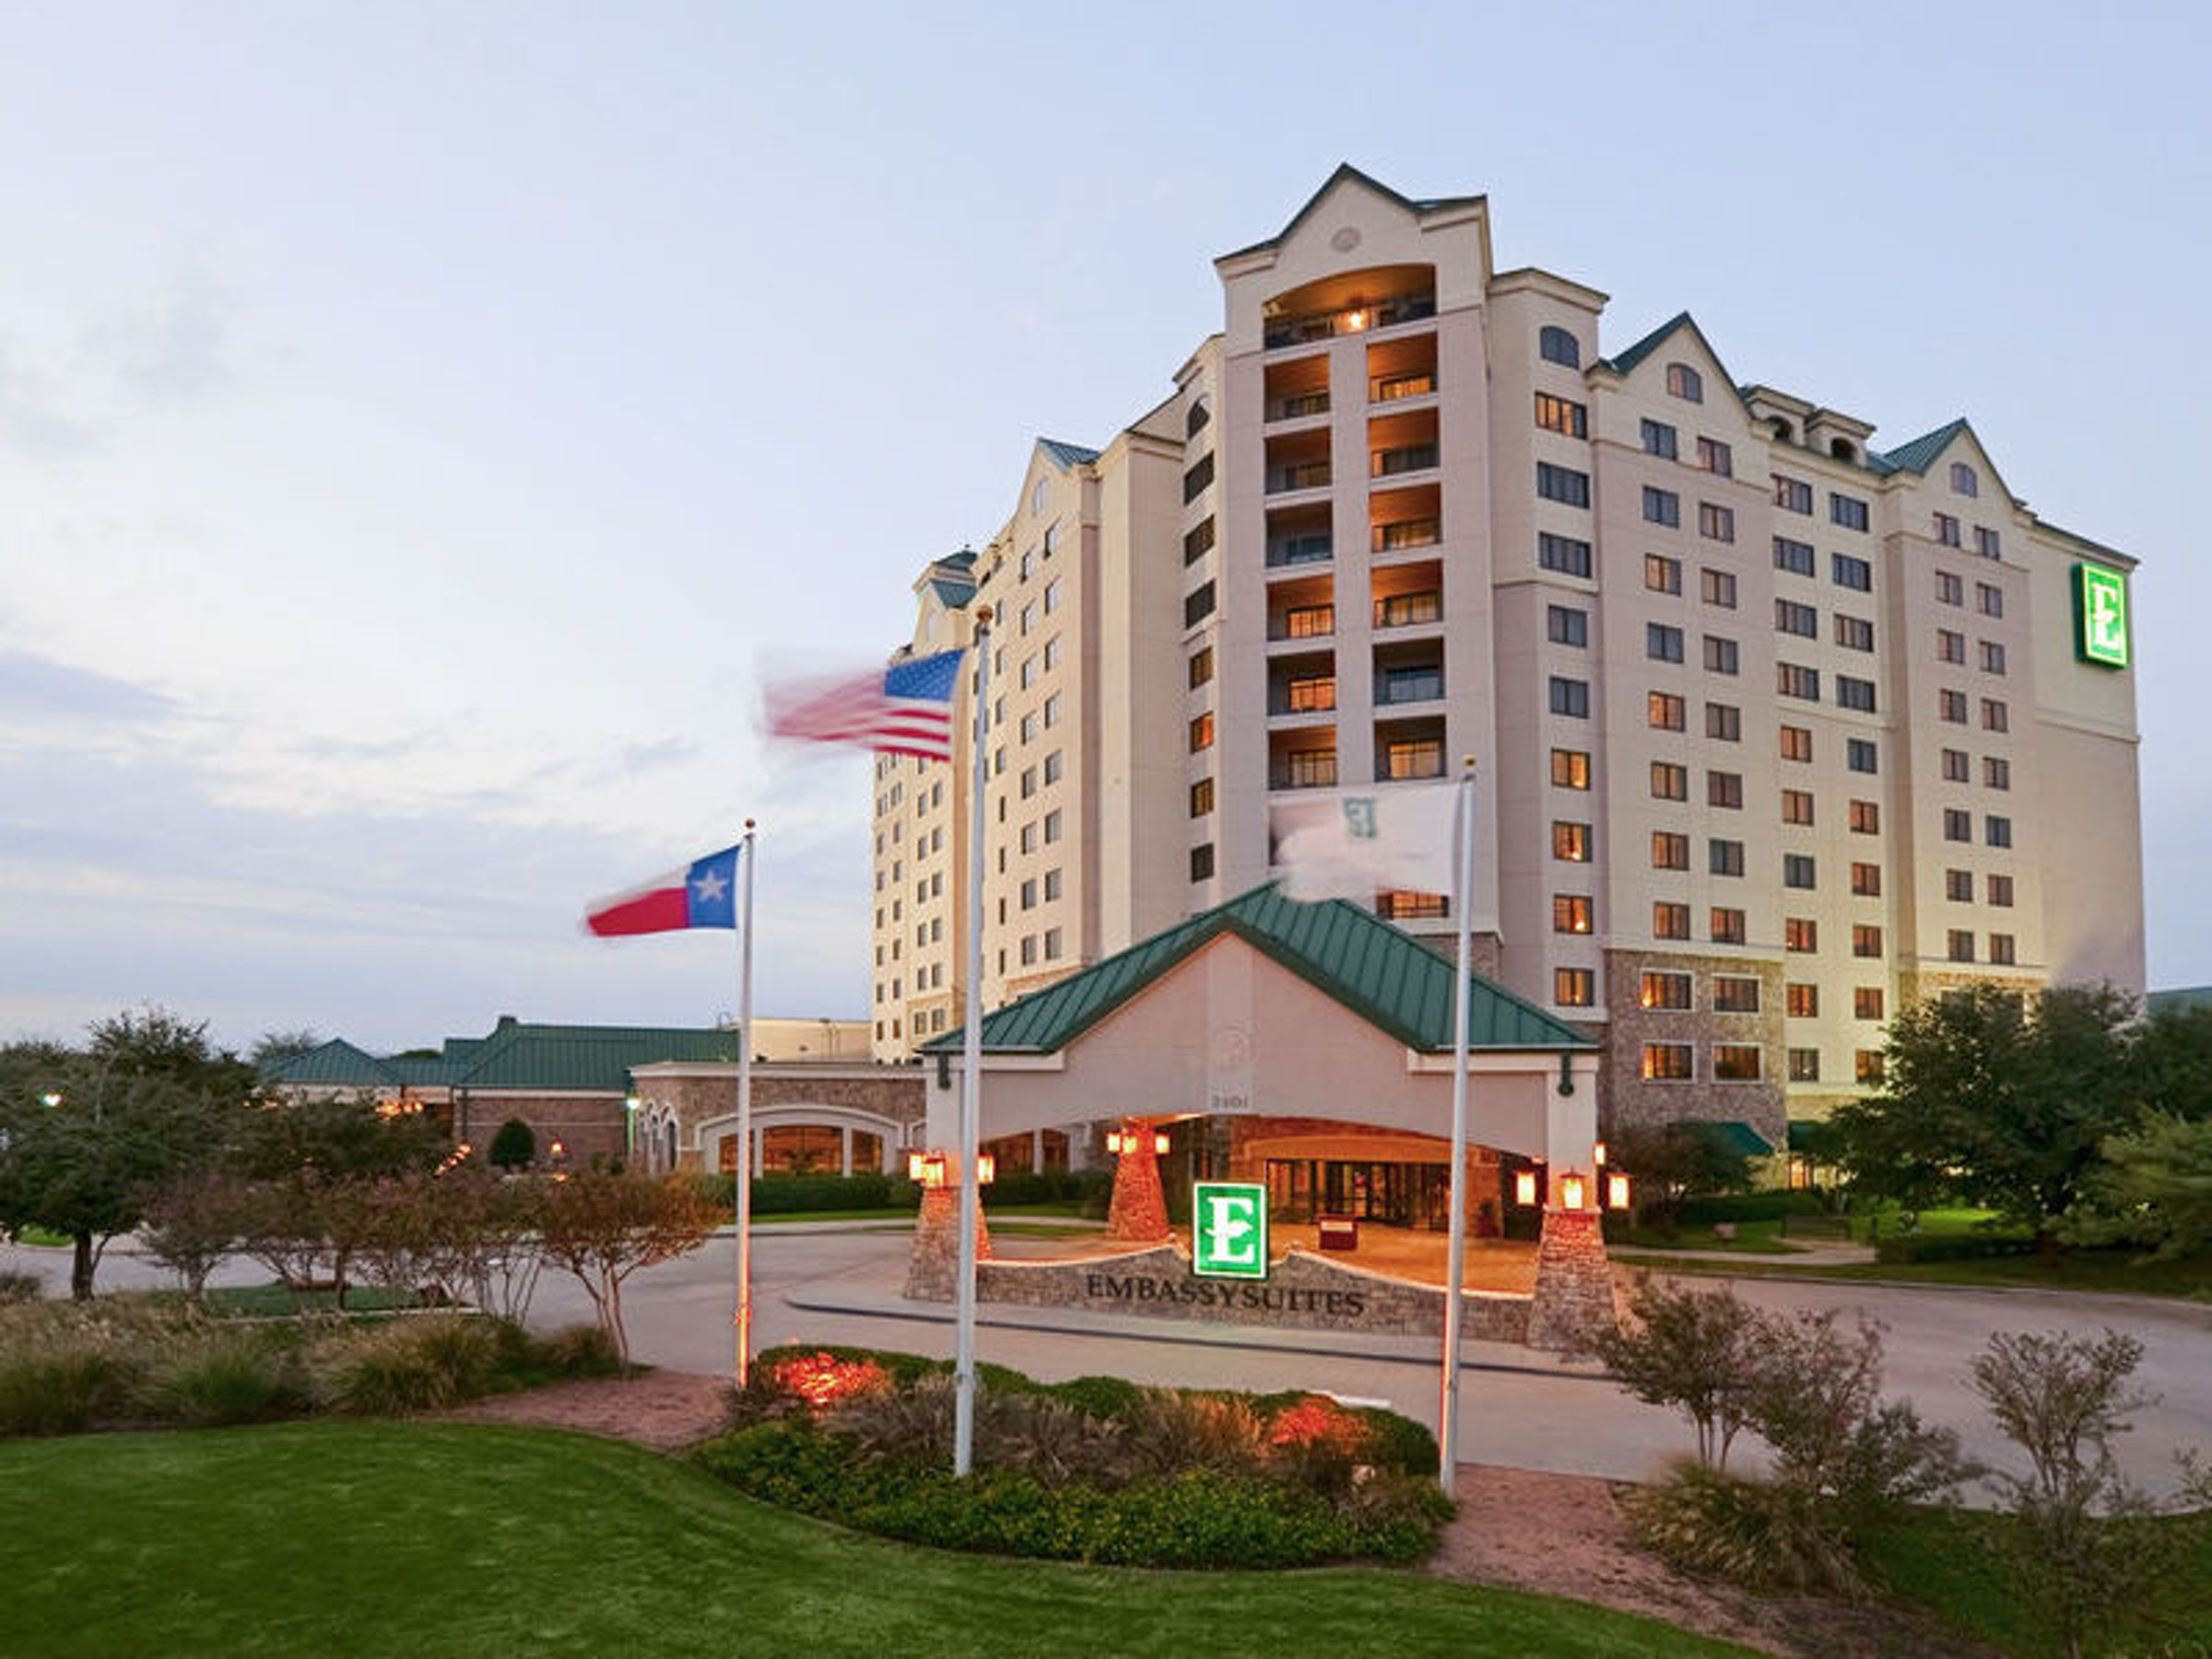 Embassy Suites by Hilton Dallas DFW Airport North in Beyond Dallas